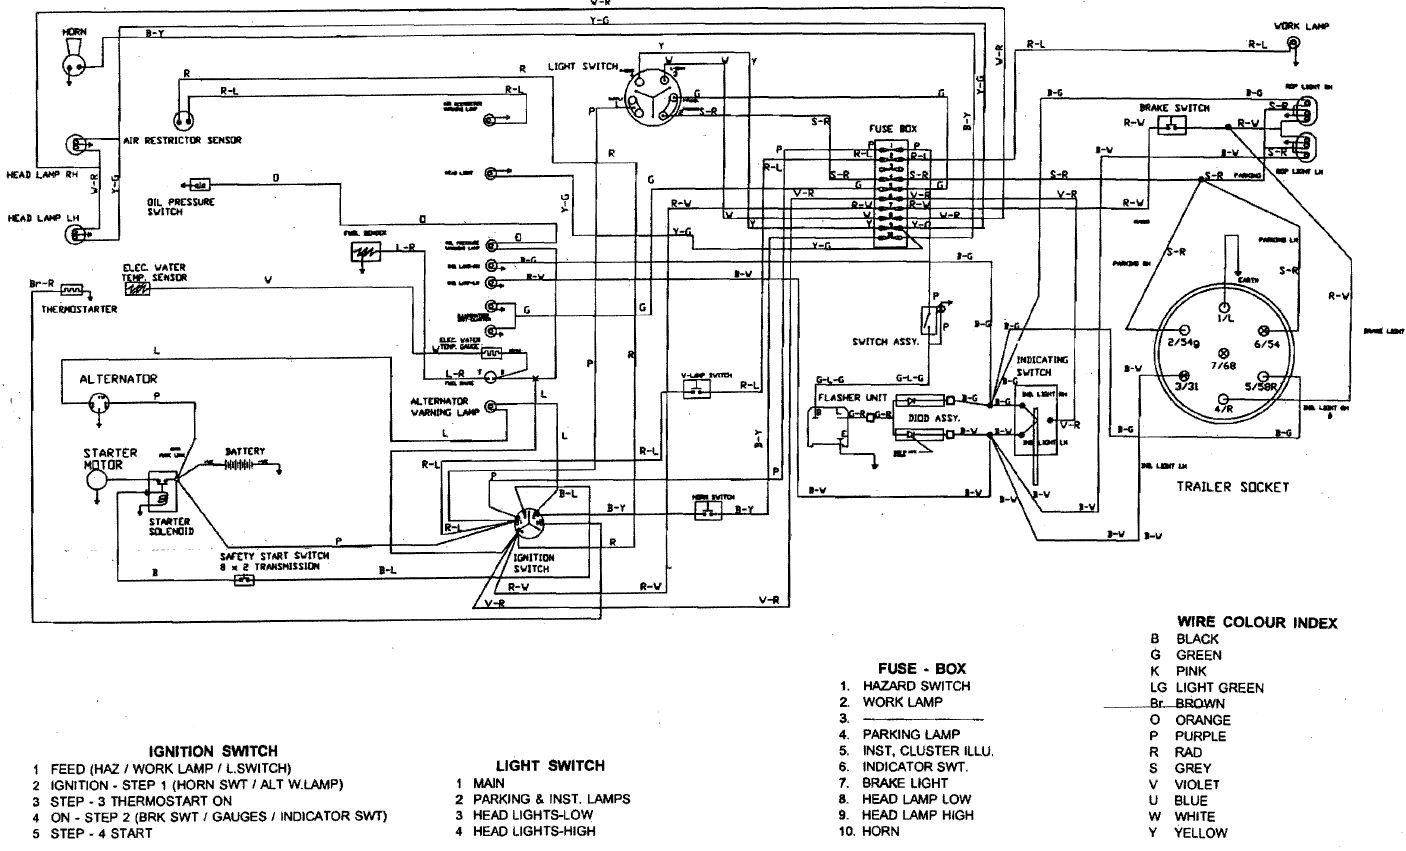 Kubota Tractor Wiring - Wiring Diagram K9 on